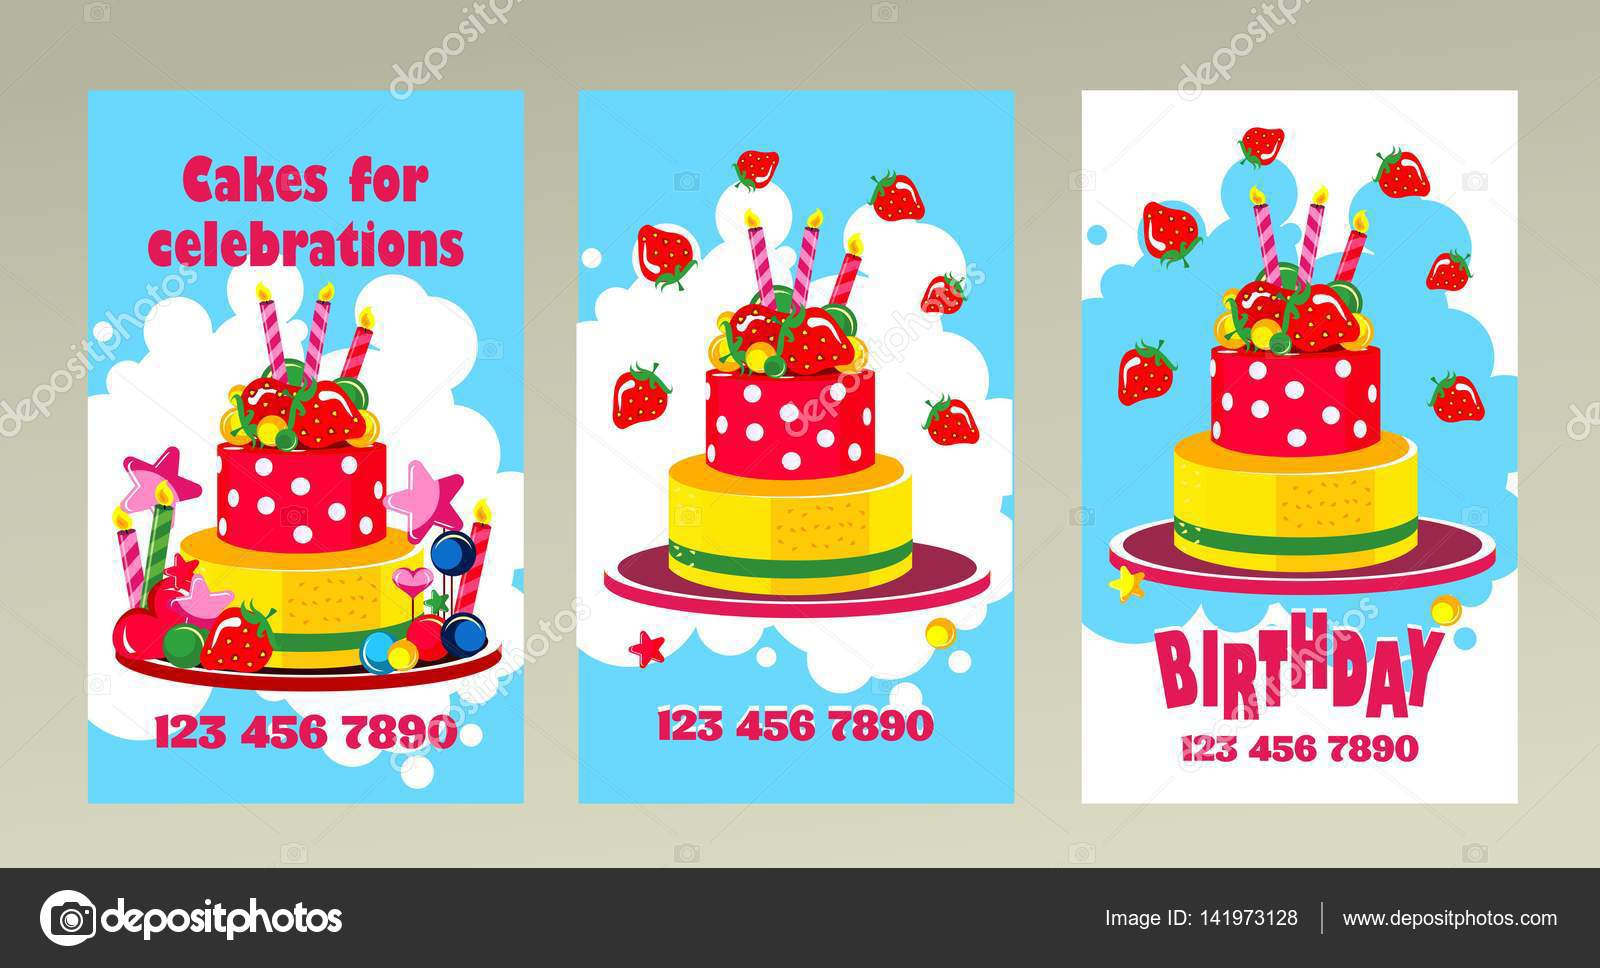 Cake Business Card Stock Vector Marrishuannna 141973128